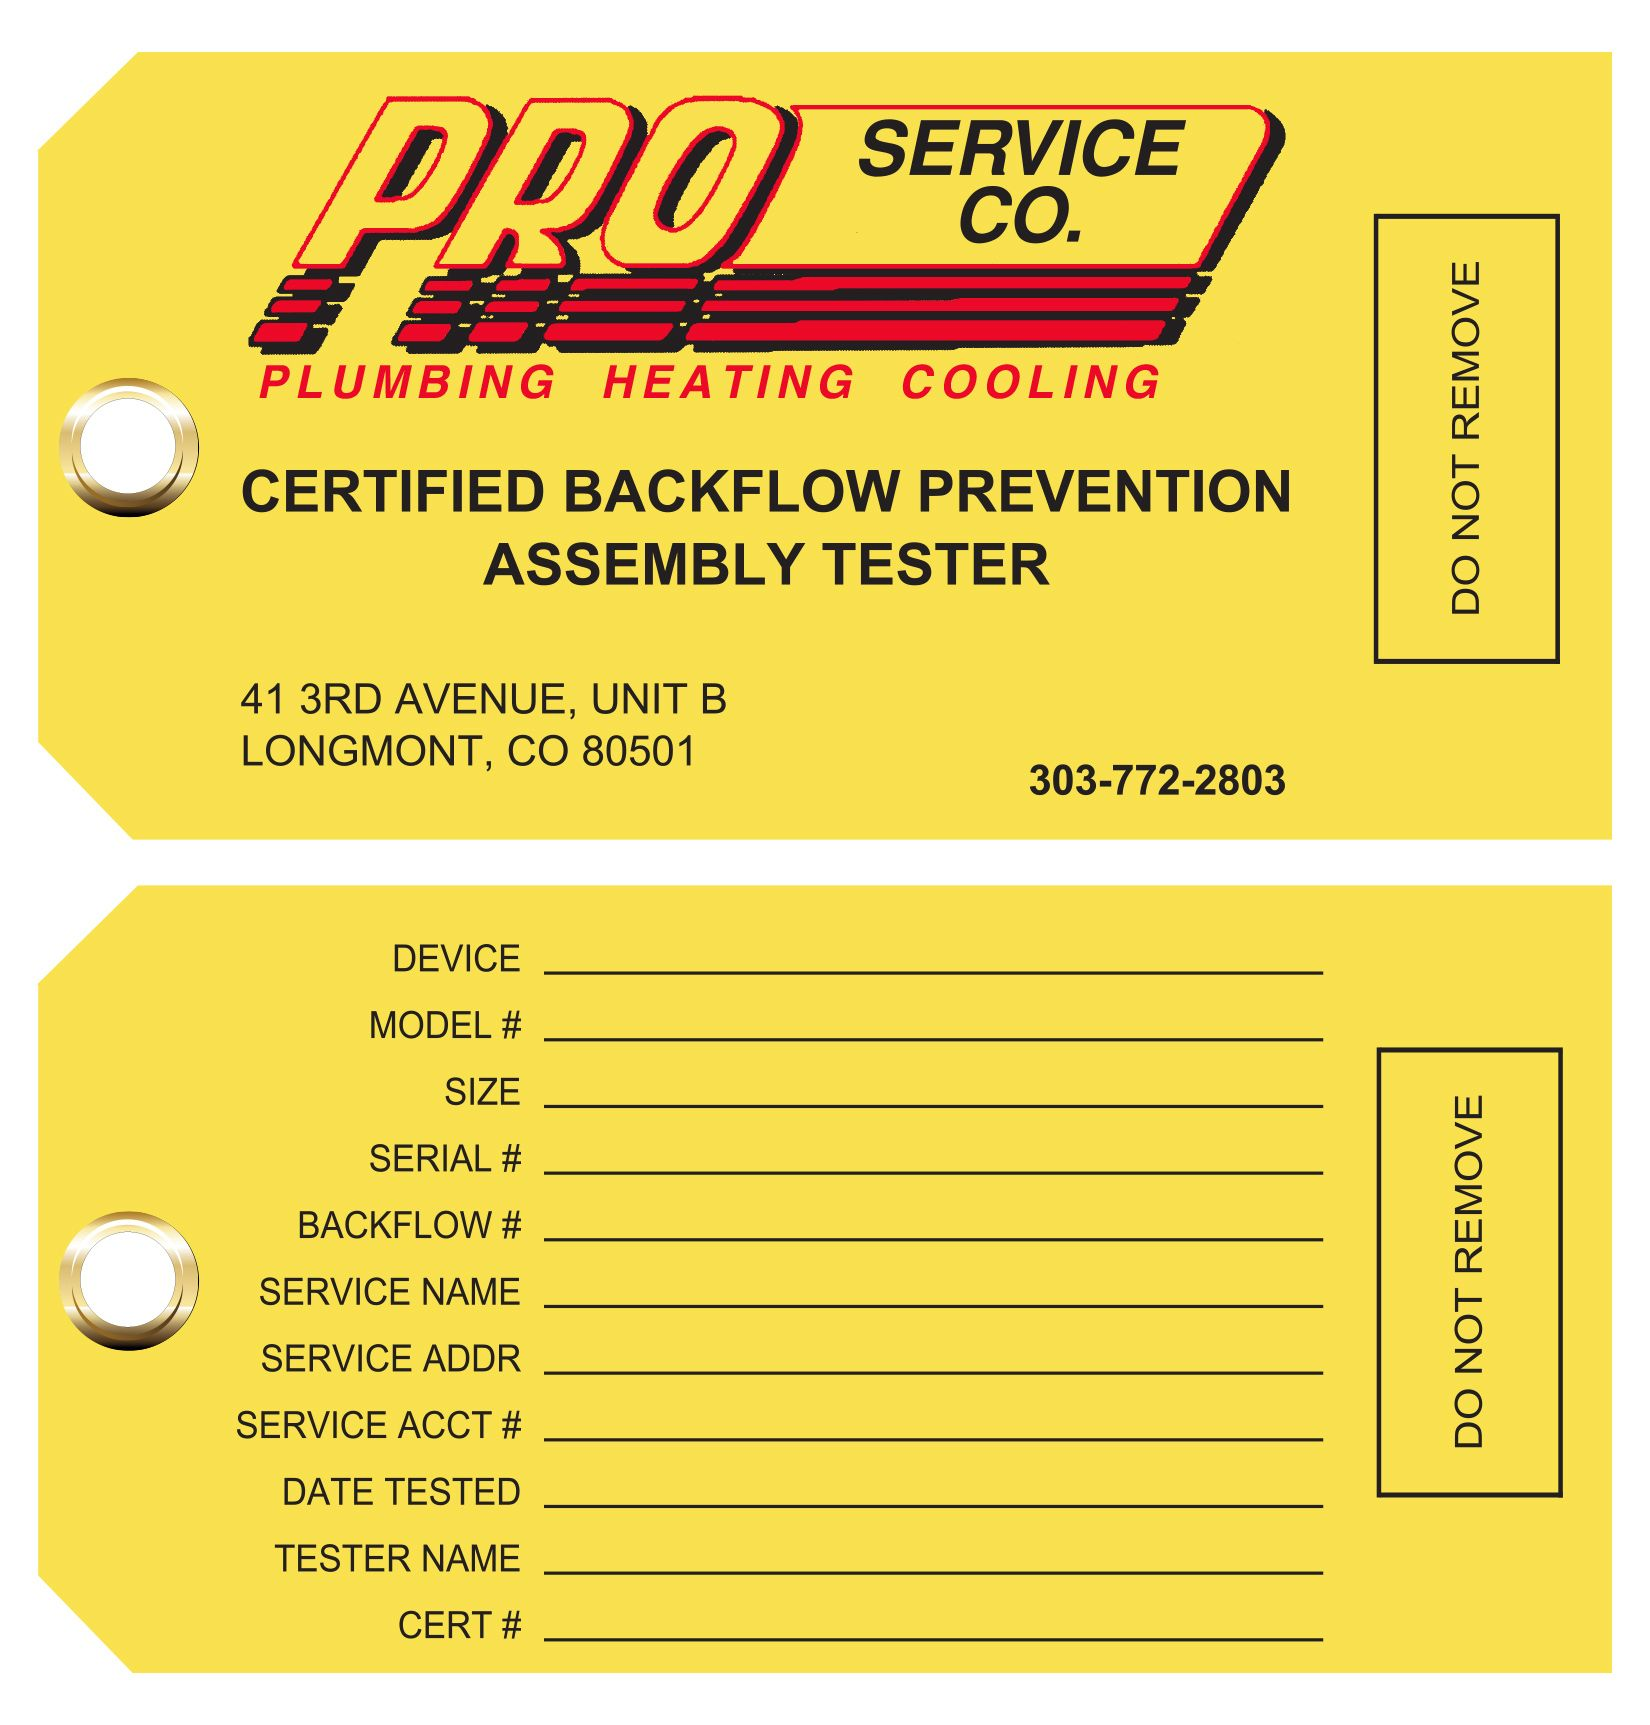 Backflow Prevention Tags All Sizes All Colors All Customized To